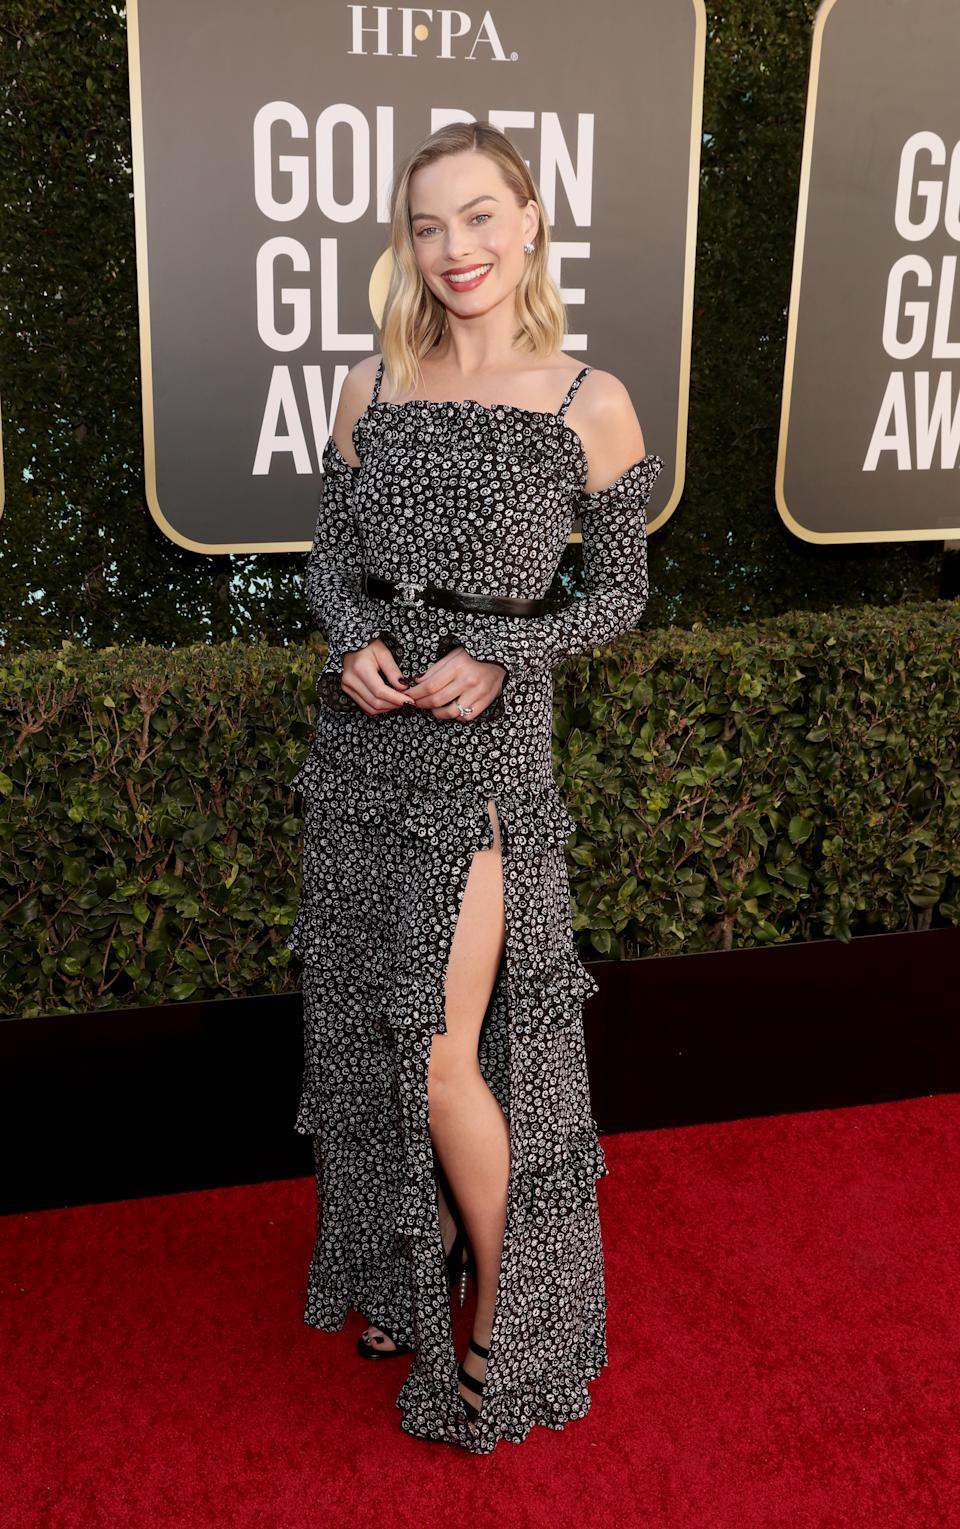 Margot Robbie wears a black and white Chanel dress at the 78th Annual Golden Globe Awards held at The Beverly Hilton and broadcast on February 28, 2021 in Beverly Hills, California.